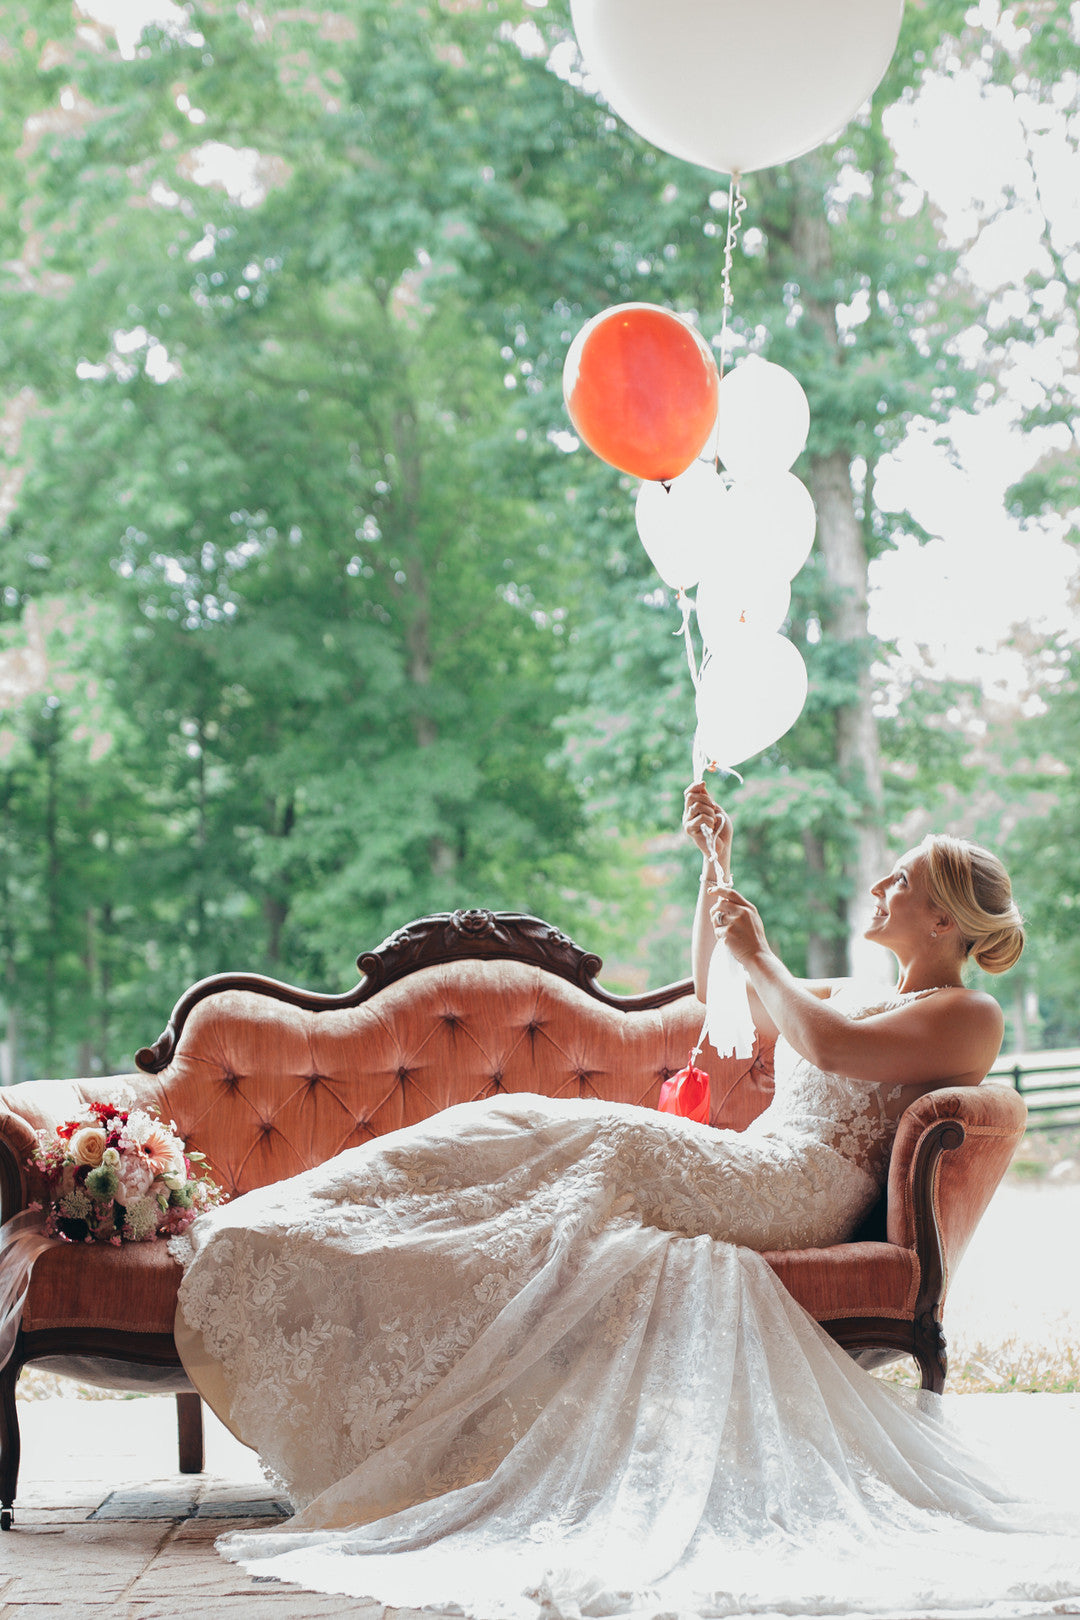 Bride and Balloons | Girls Just Want to Have Fun Bridal Shower | Kate Aspen